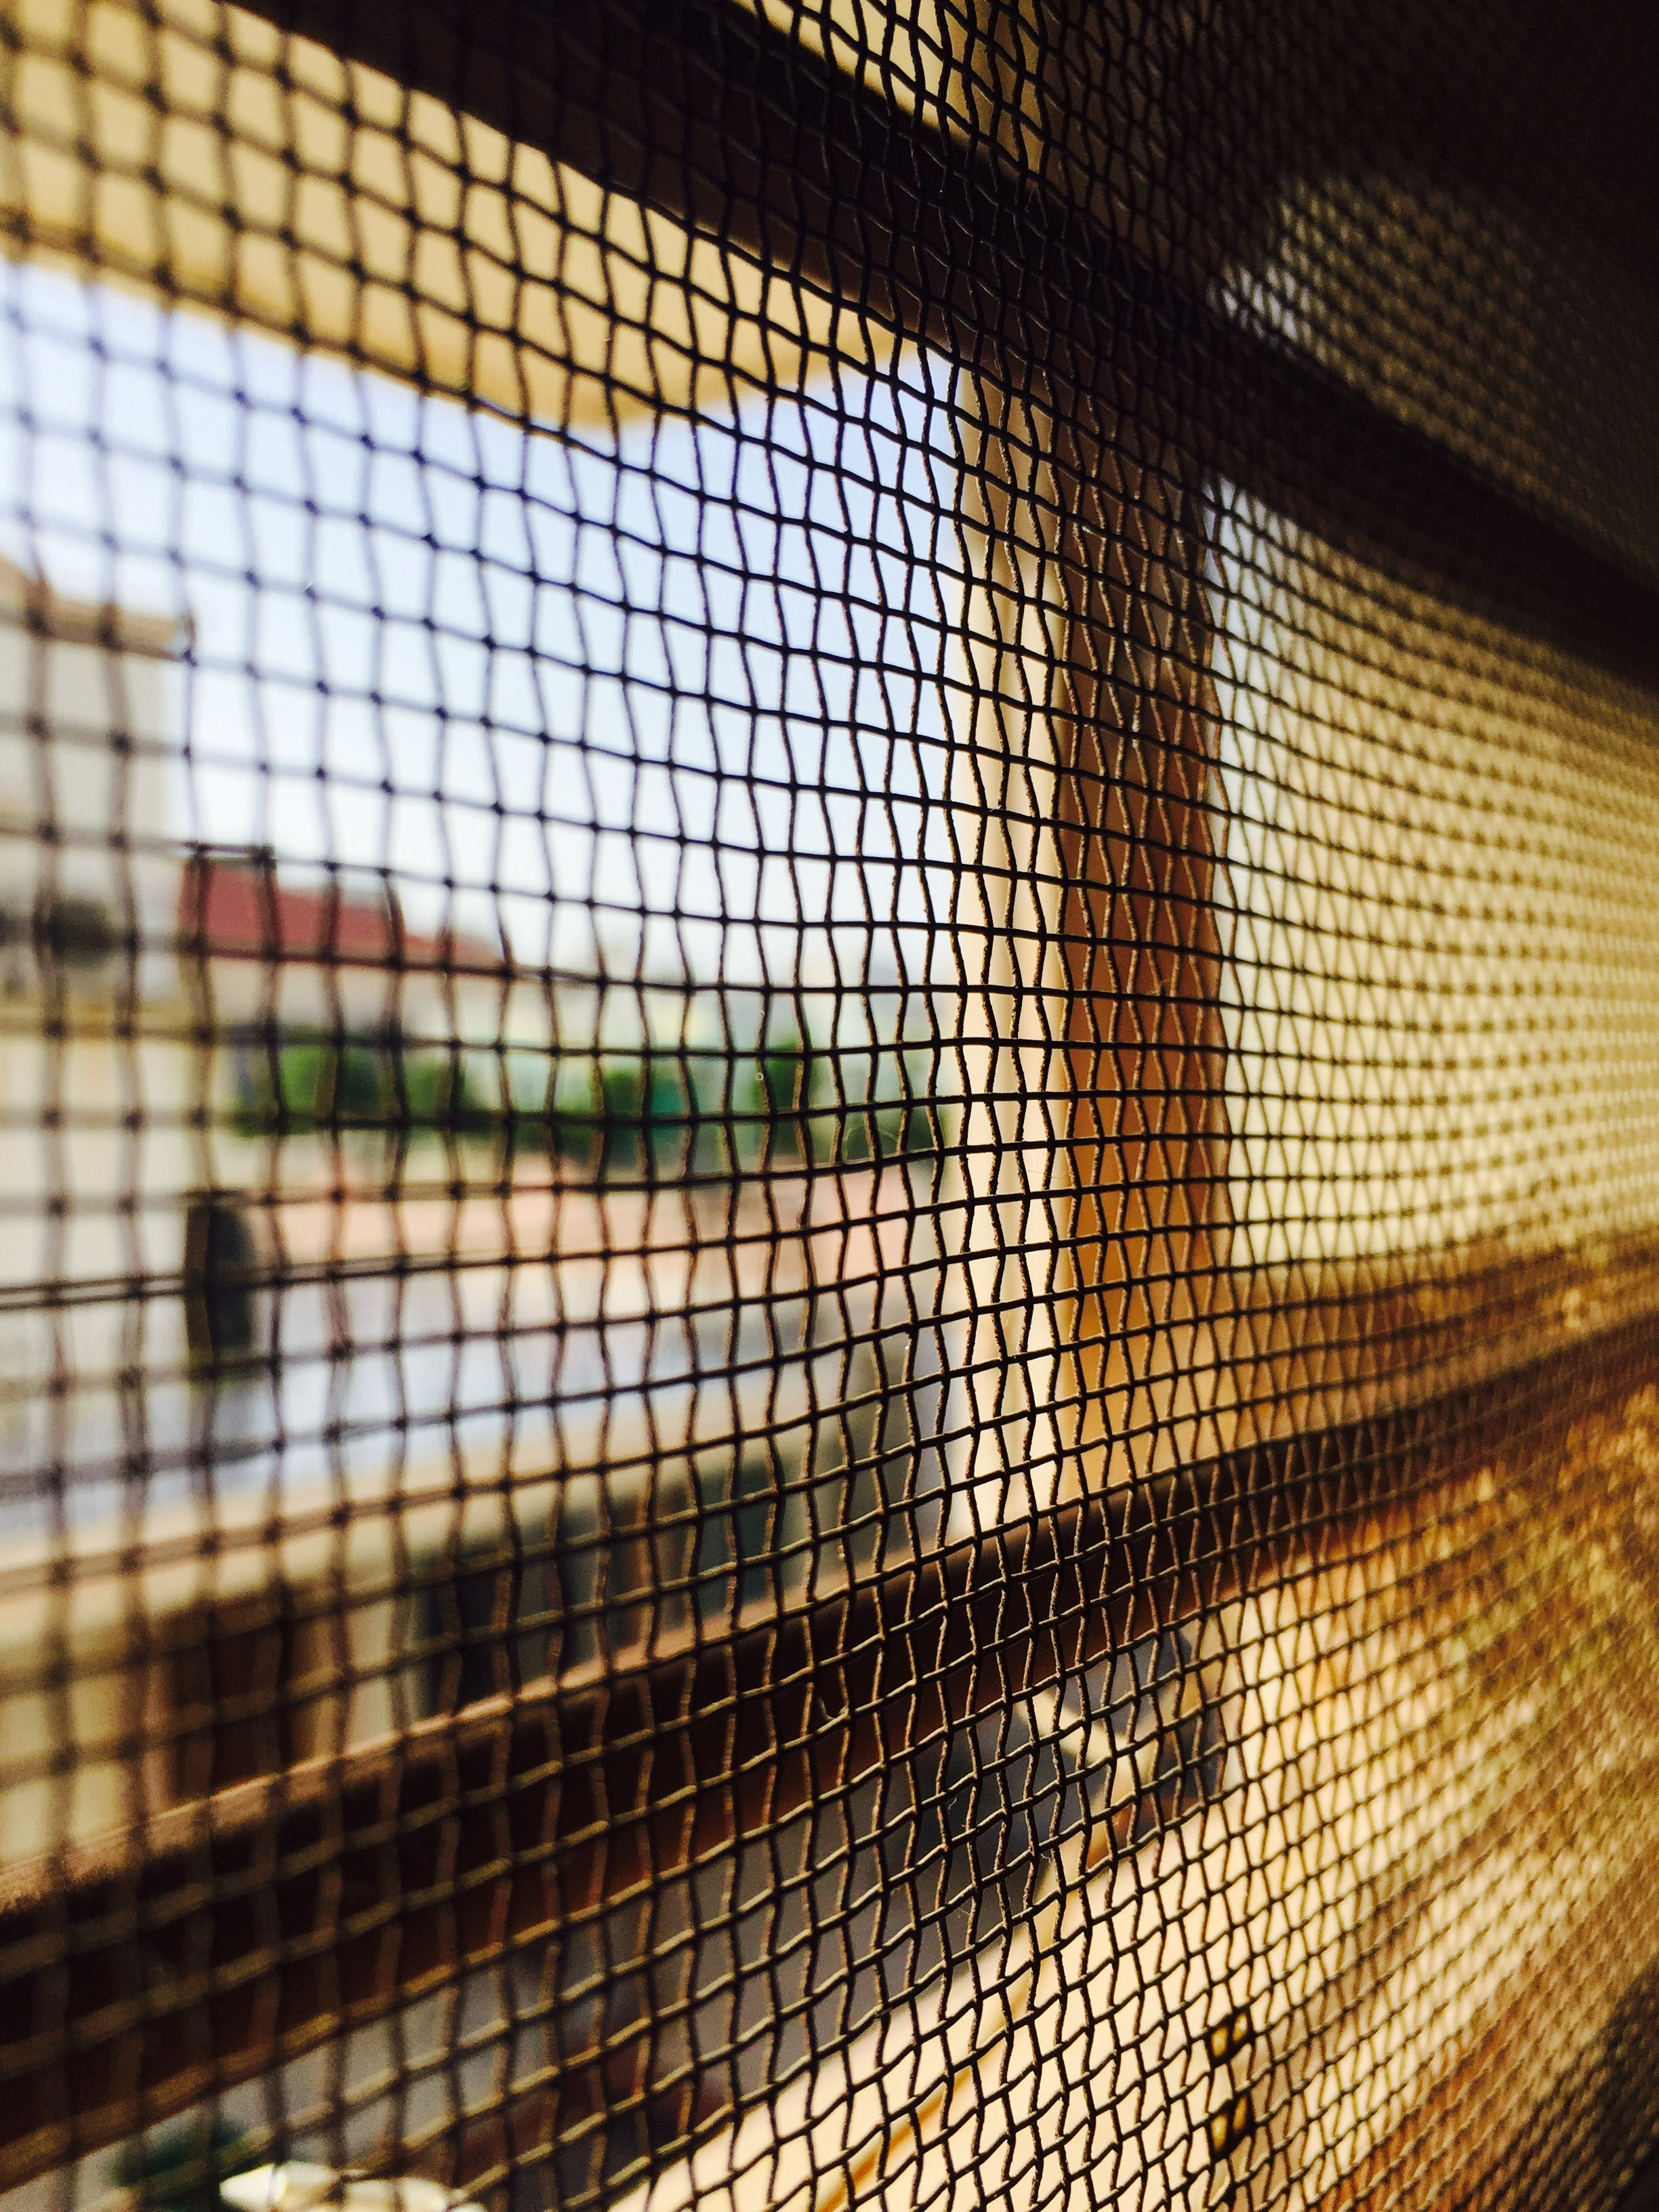 Free stock photo of bedroom, golden hour, grid, grill